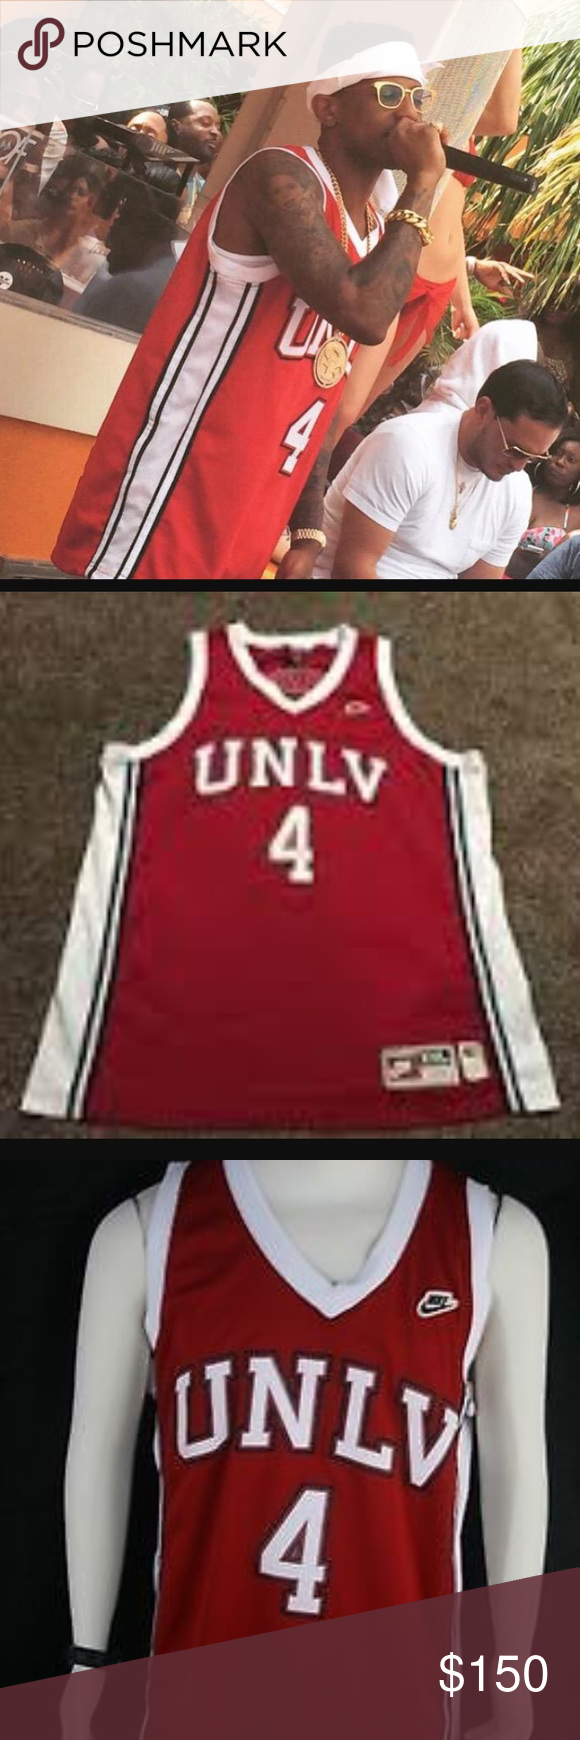 huge discount 65e7e 0c724 1990 Nike Throwback UNLV Larry Johnson Jersey #3 college ...